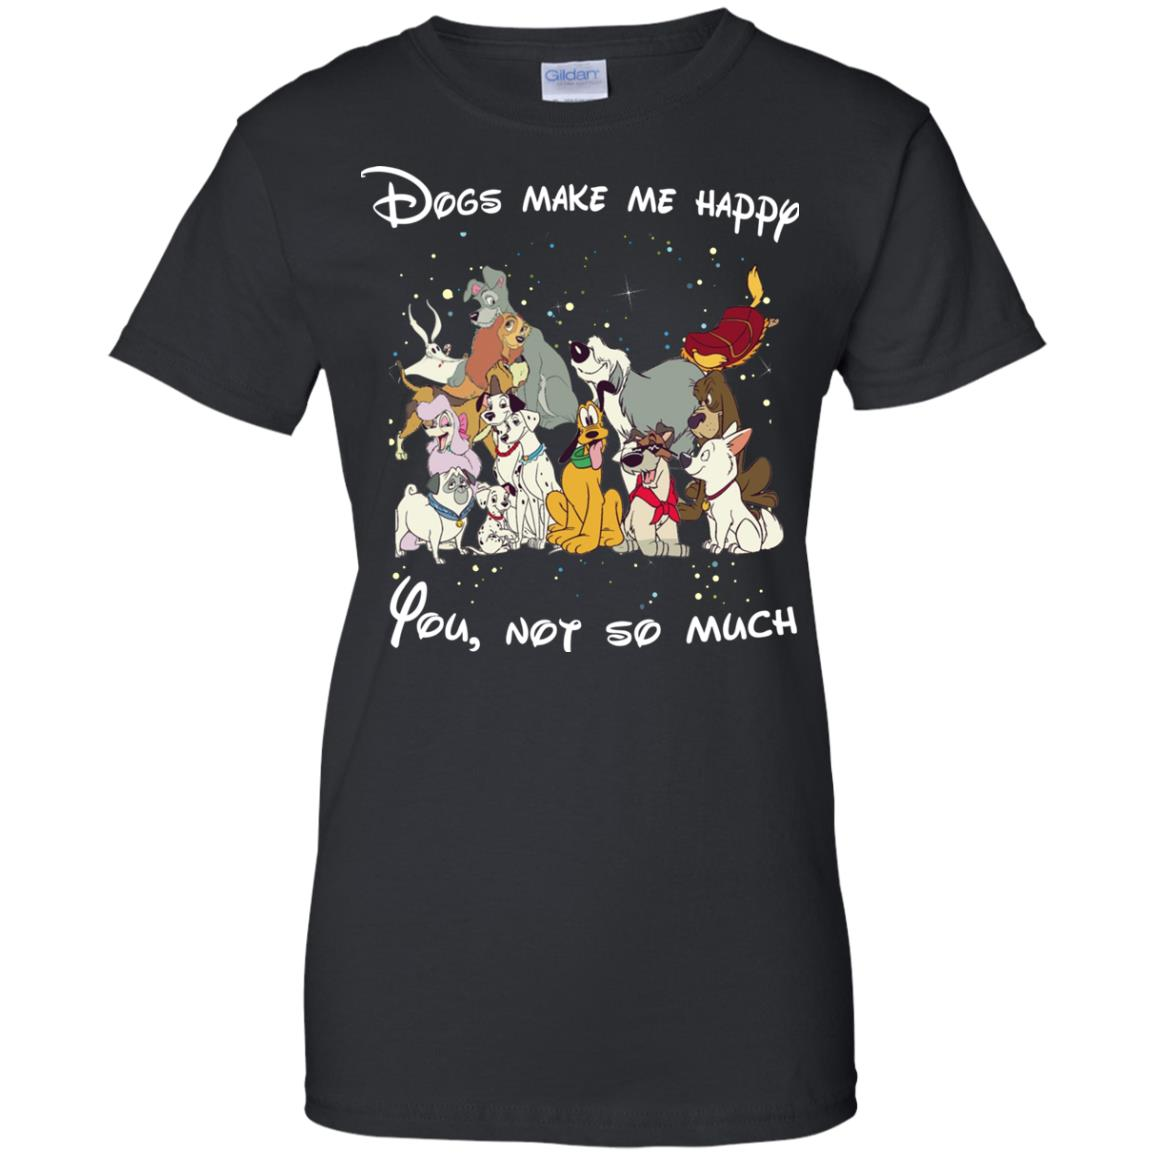 Disney dogs dogs make me happy you not so much t shirt for Oversized disney t shirts